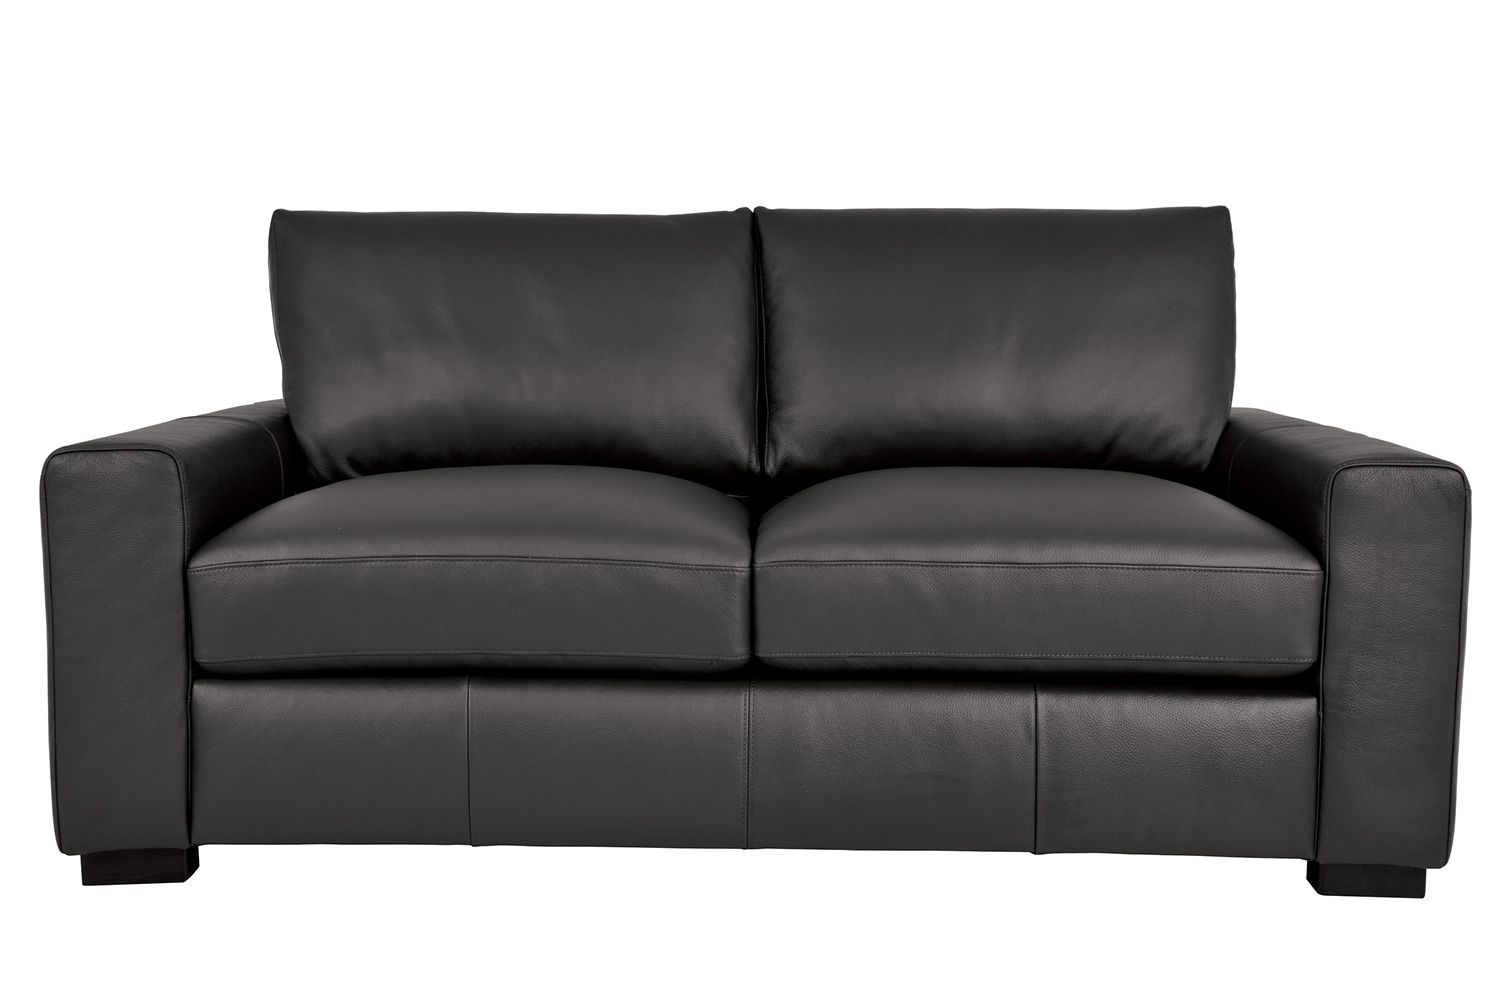 Homelegance Escolar Love Seat - Brown